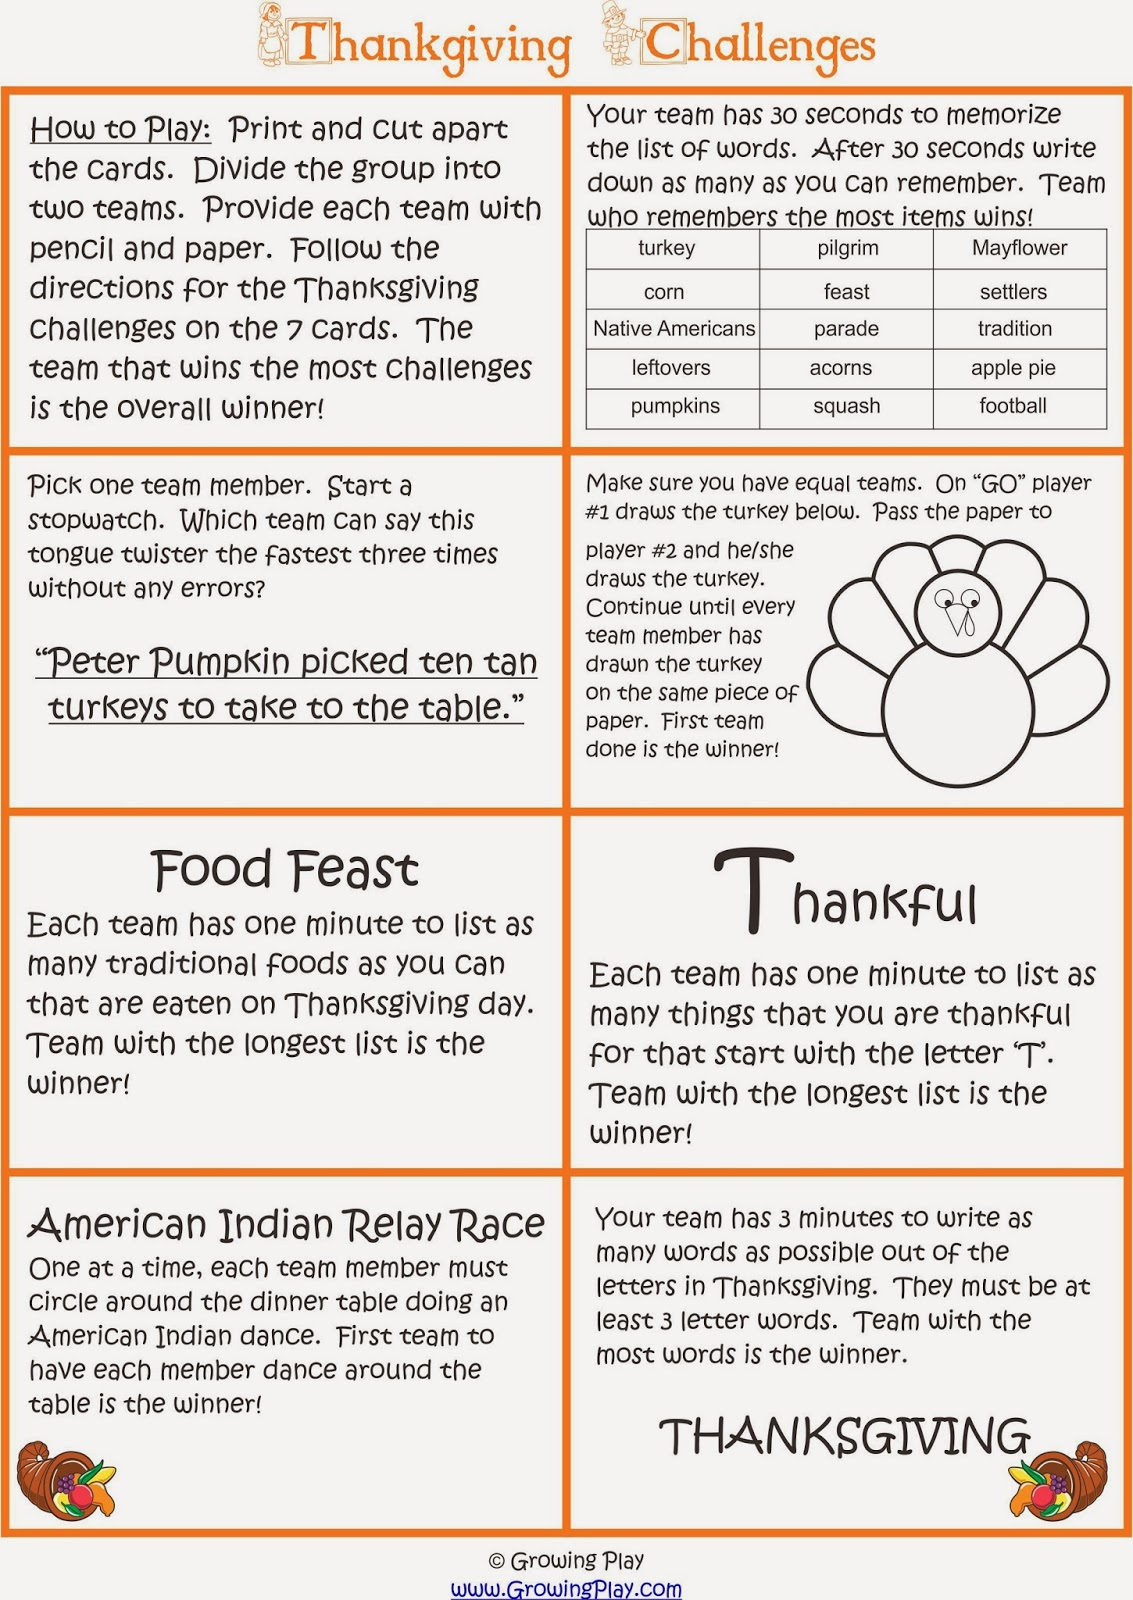 growing play thanksgiving challenge game since we are not heading out for thanksgiving dinner until later this year i created a simple group game for us to play in the morning to help celebrate